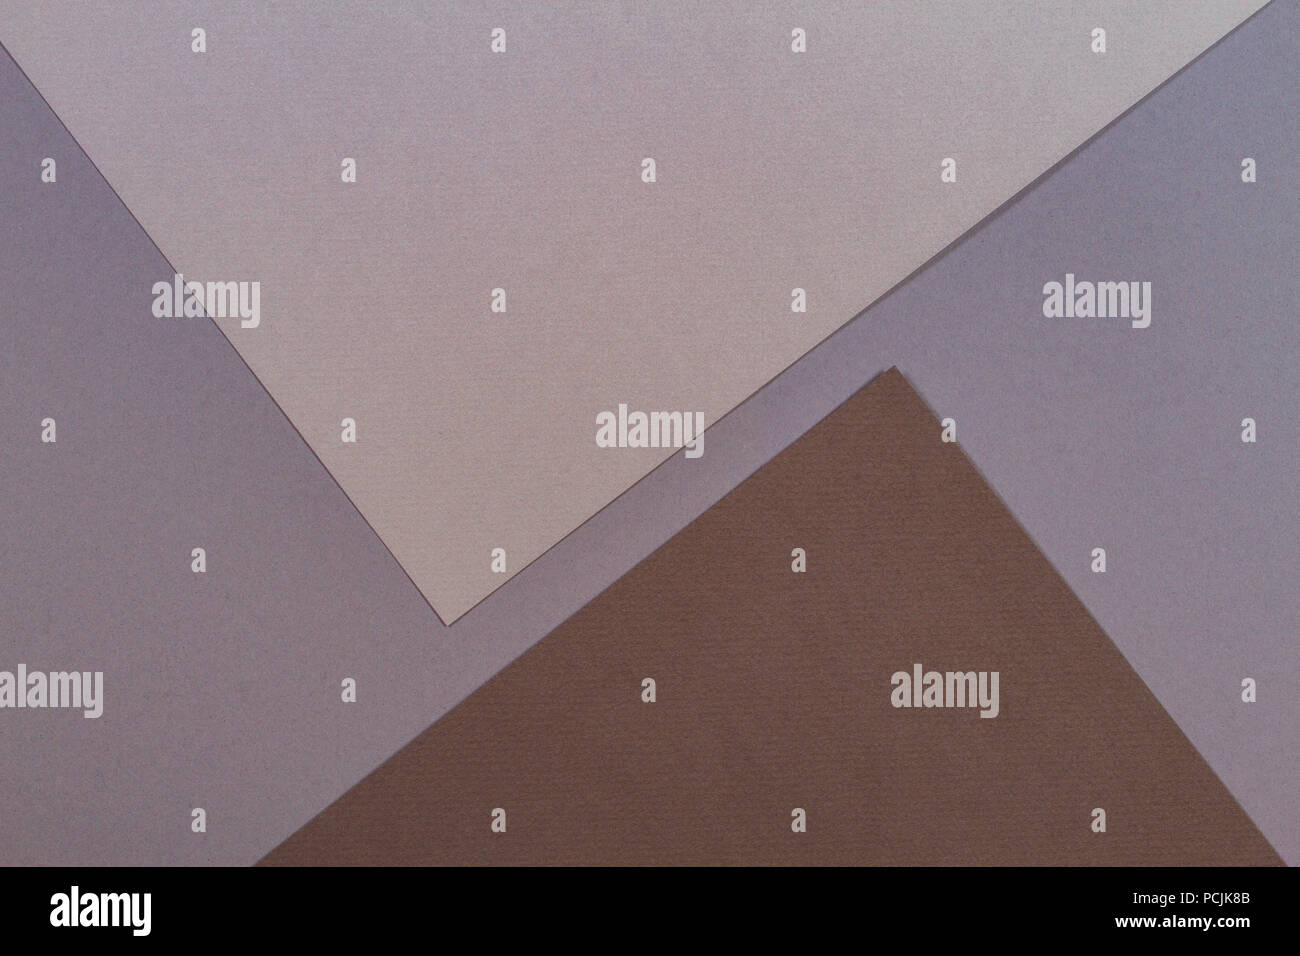 Color papers geometry composition background with gray and brown tones - Stock Image